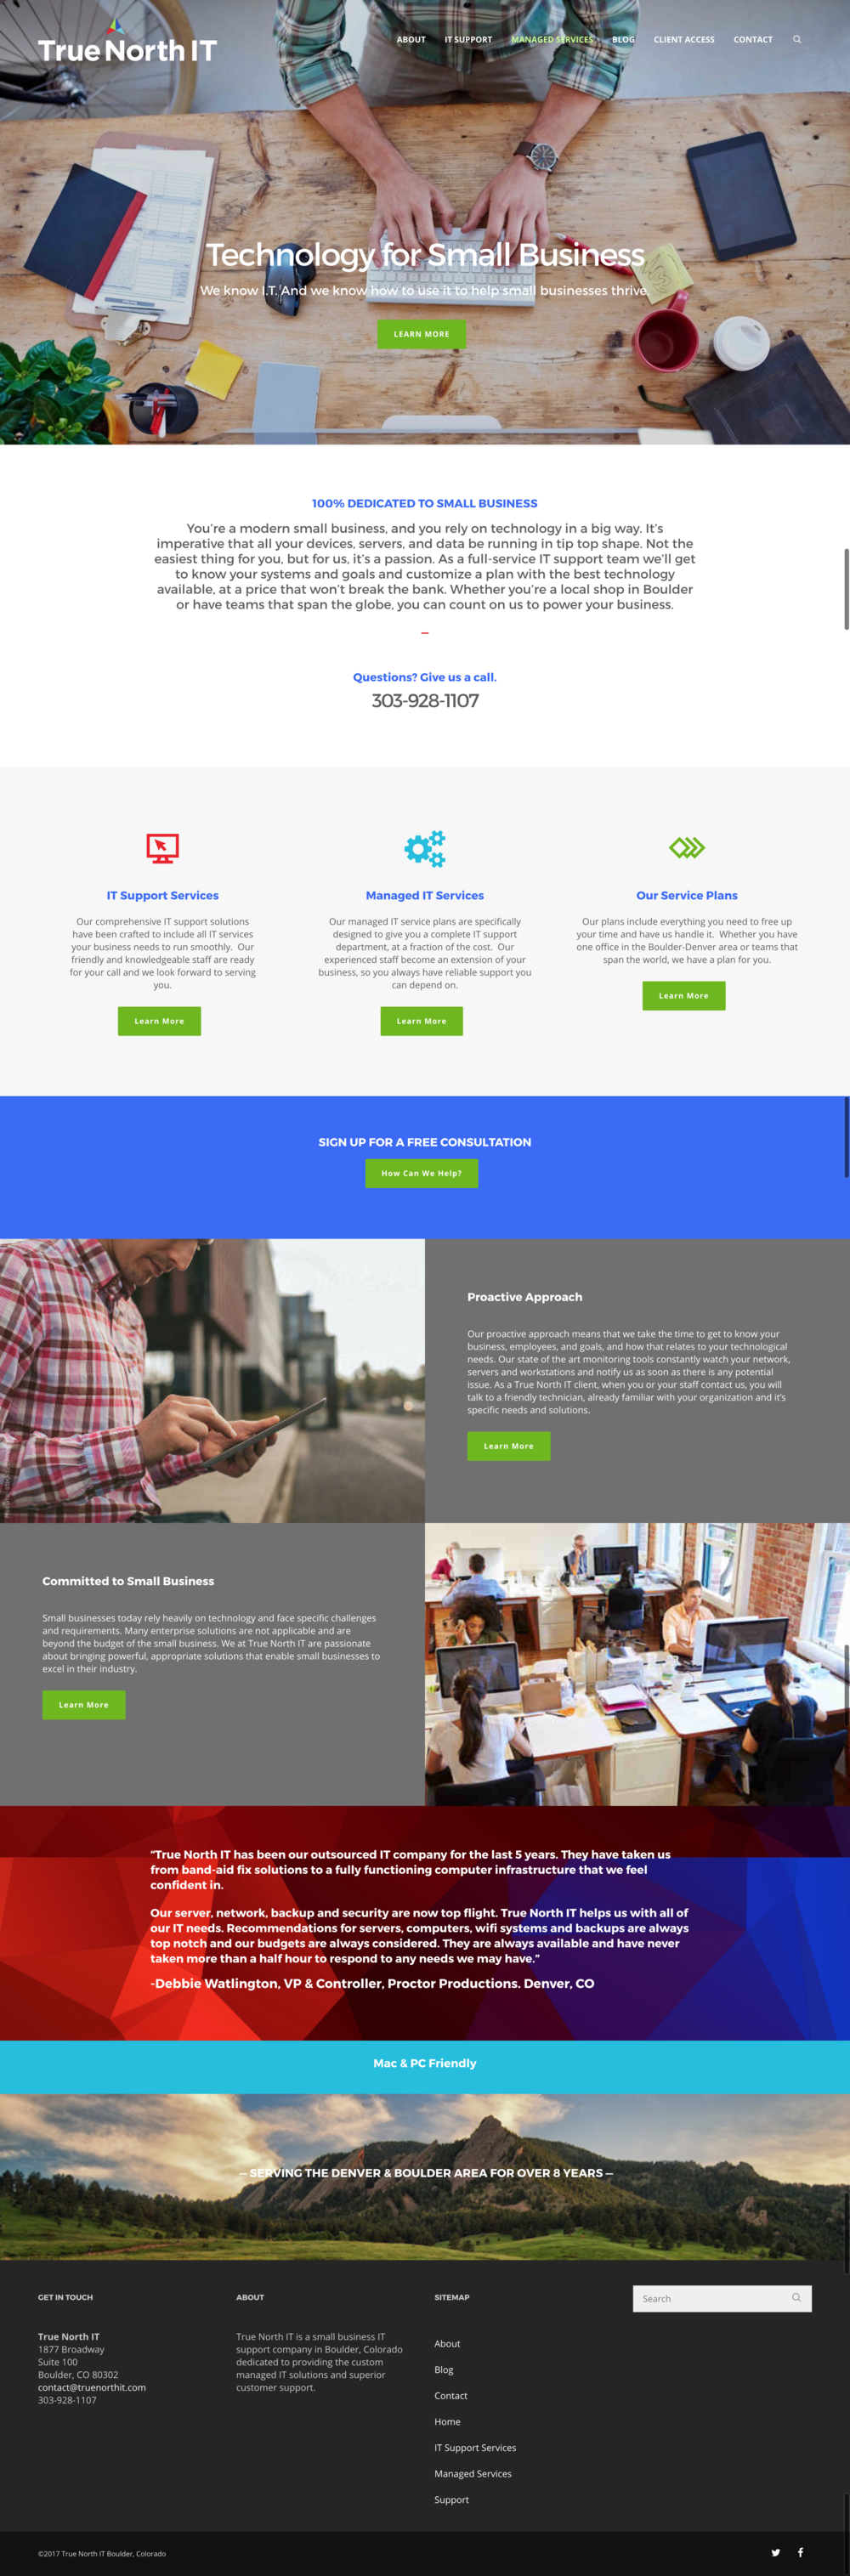 cz-design-web-design-true-north-it-home-page.png